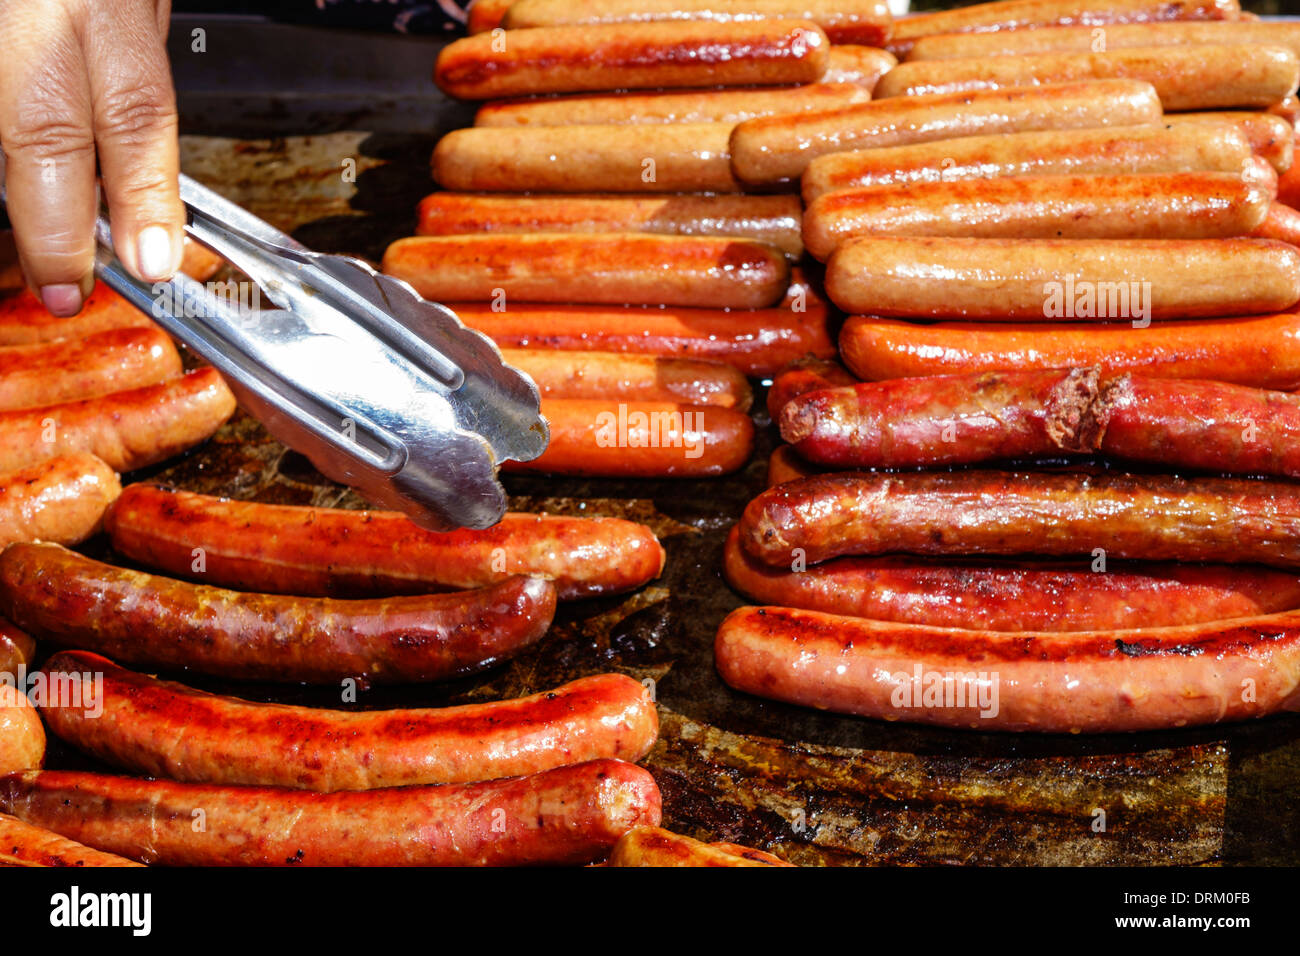 Where To Buy Sabrett Hot Dogs